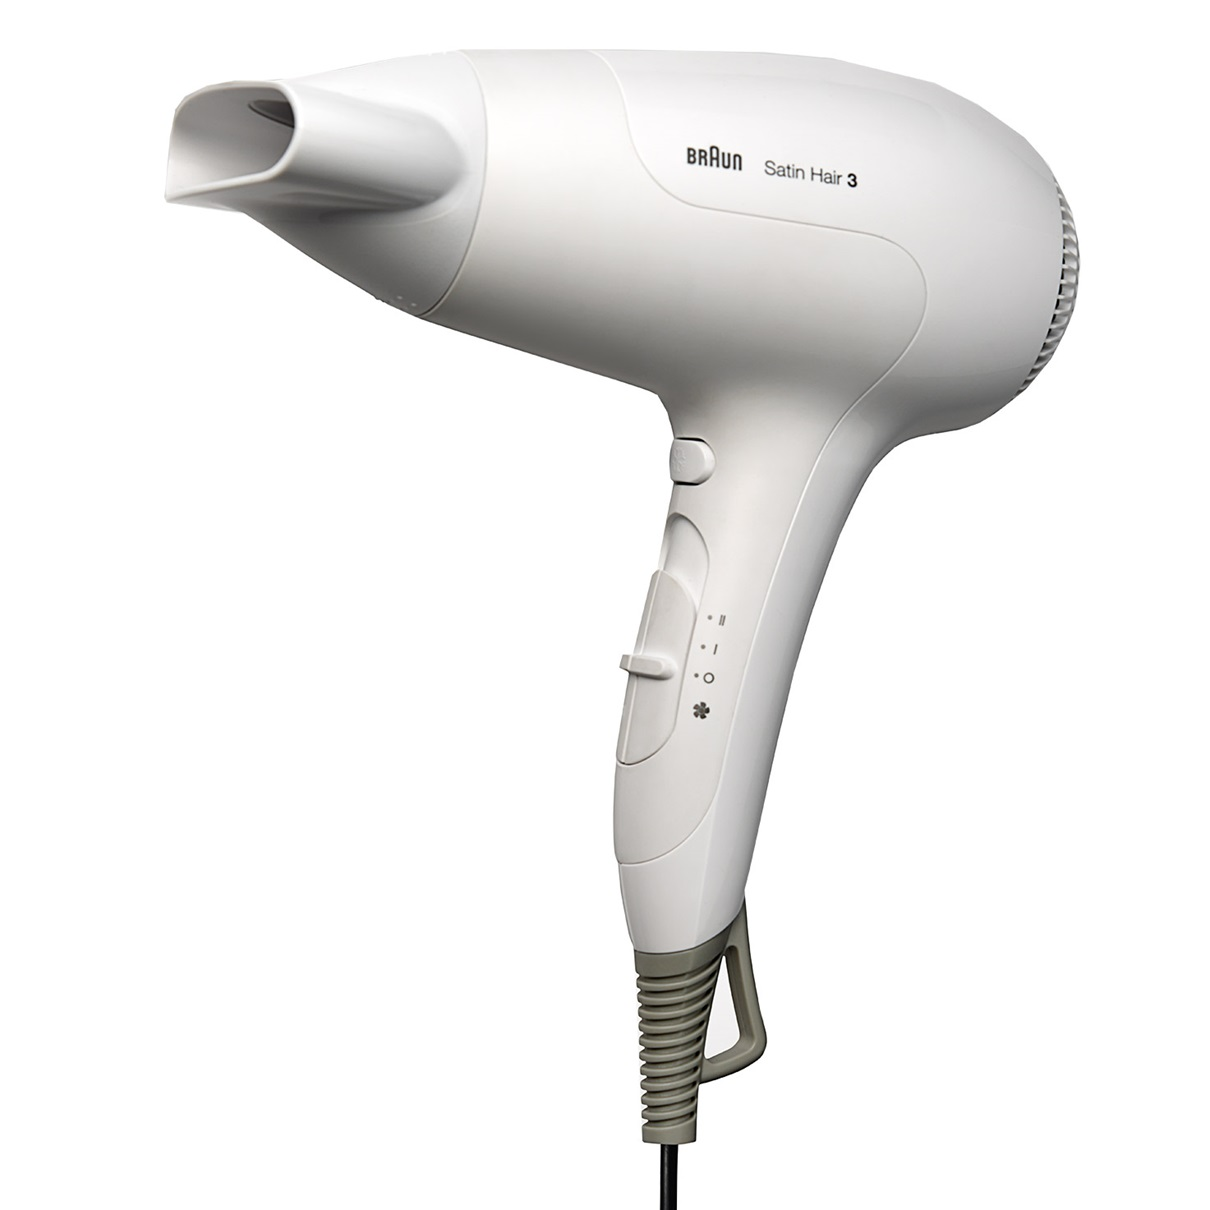 Satin Hair 3 PowerPerfection dryer HD380